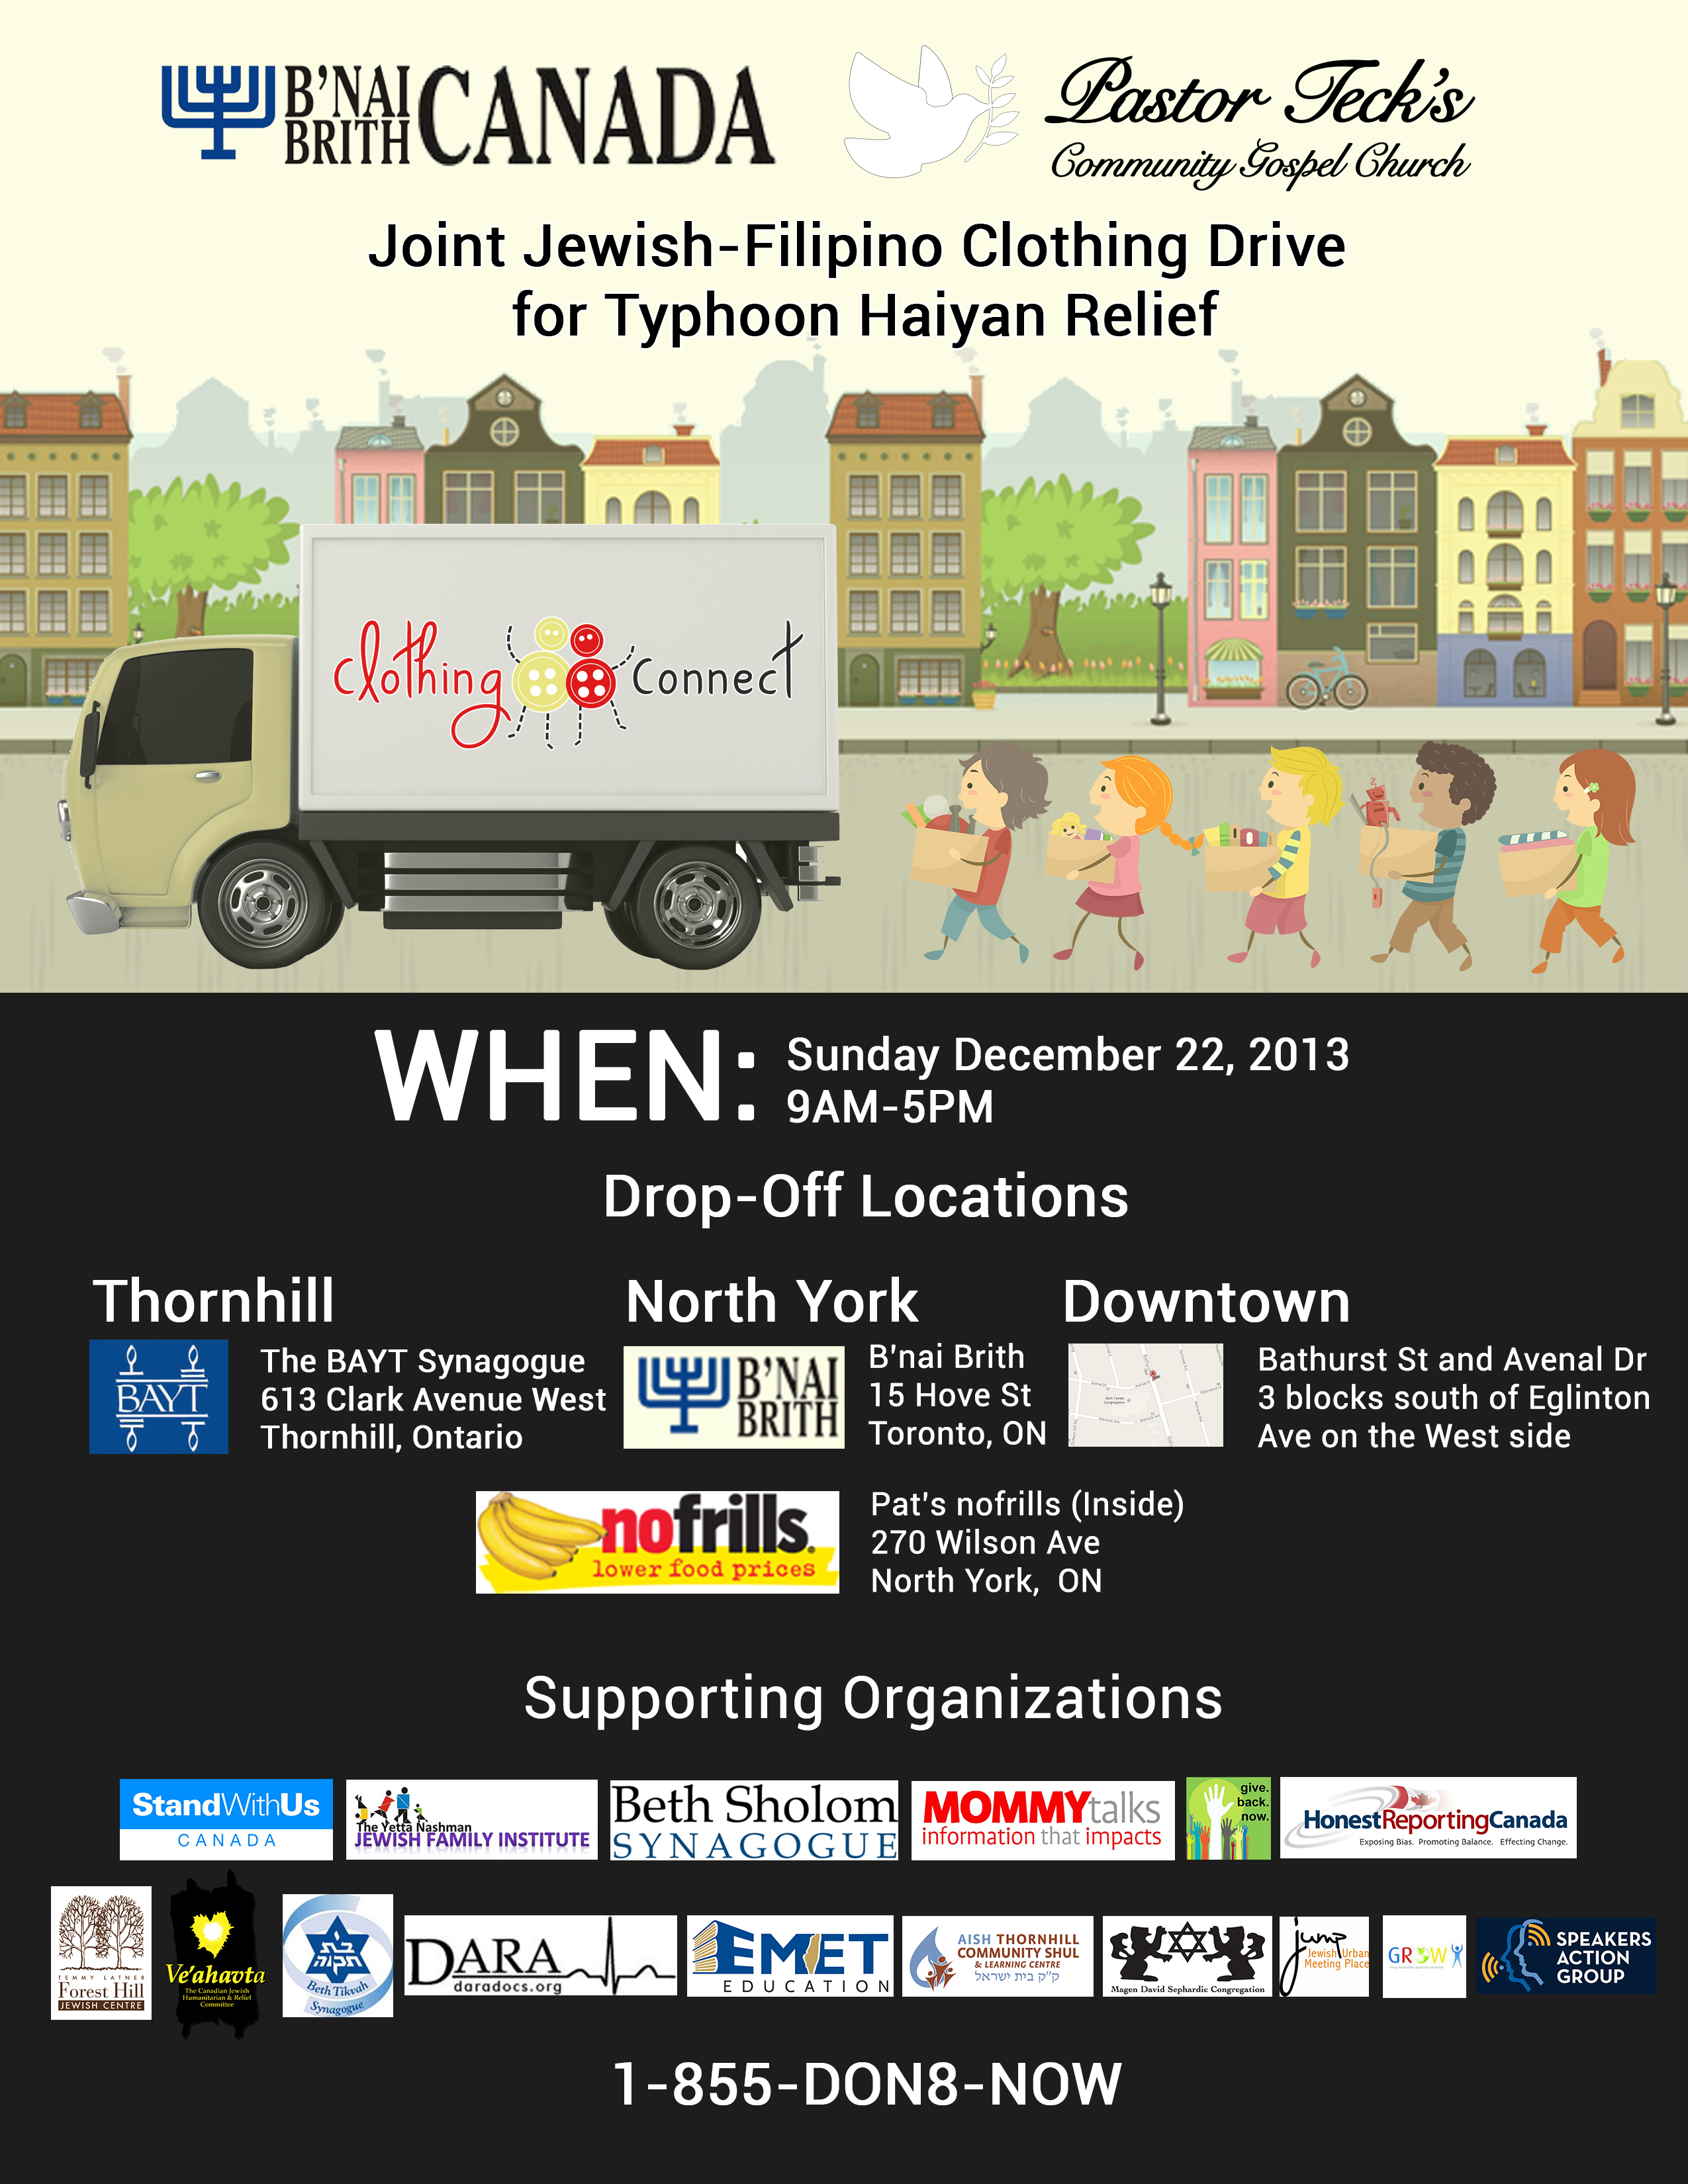 Joint Jewish-Filipino Clothing Drive for Typhoon Haiyan Relief on Dec. 22